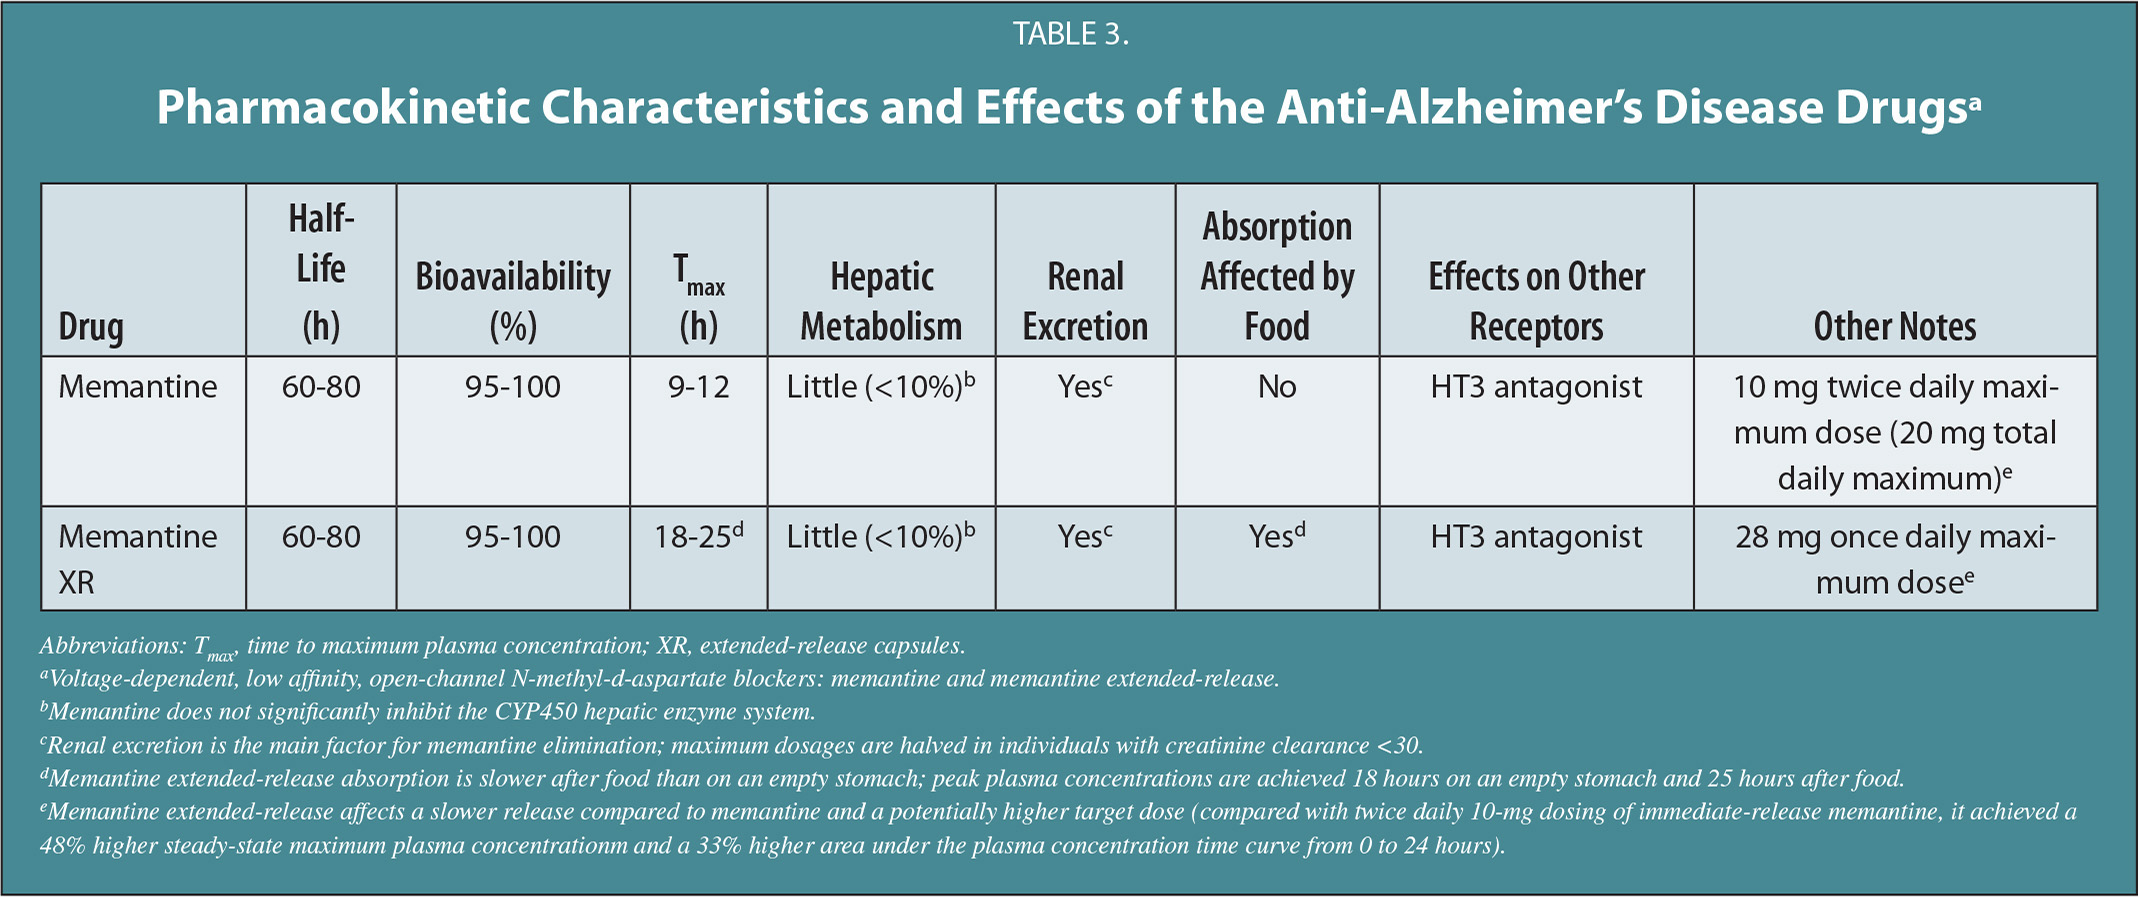 Pharmacokinetic Characteristics and Effects of the Anti-Alzheimer's Disease Drugsa